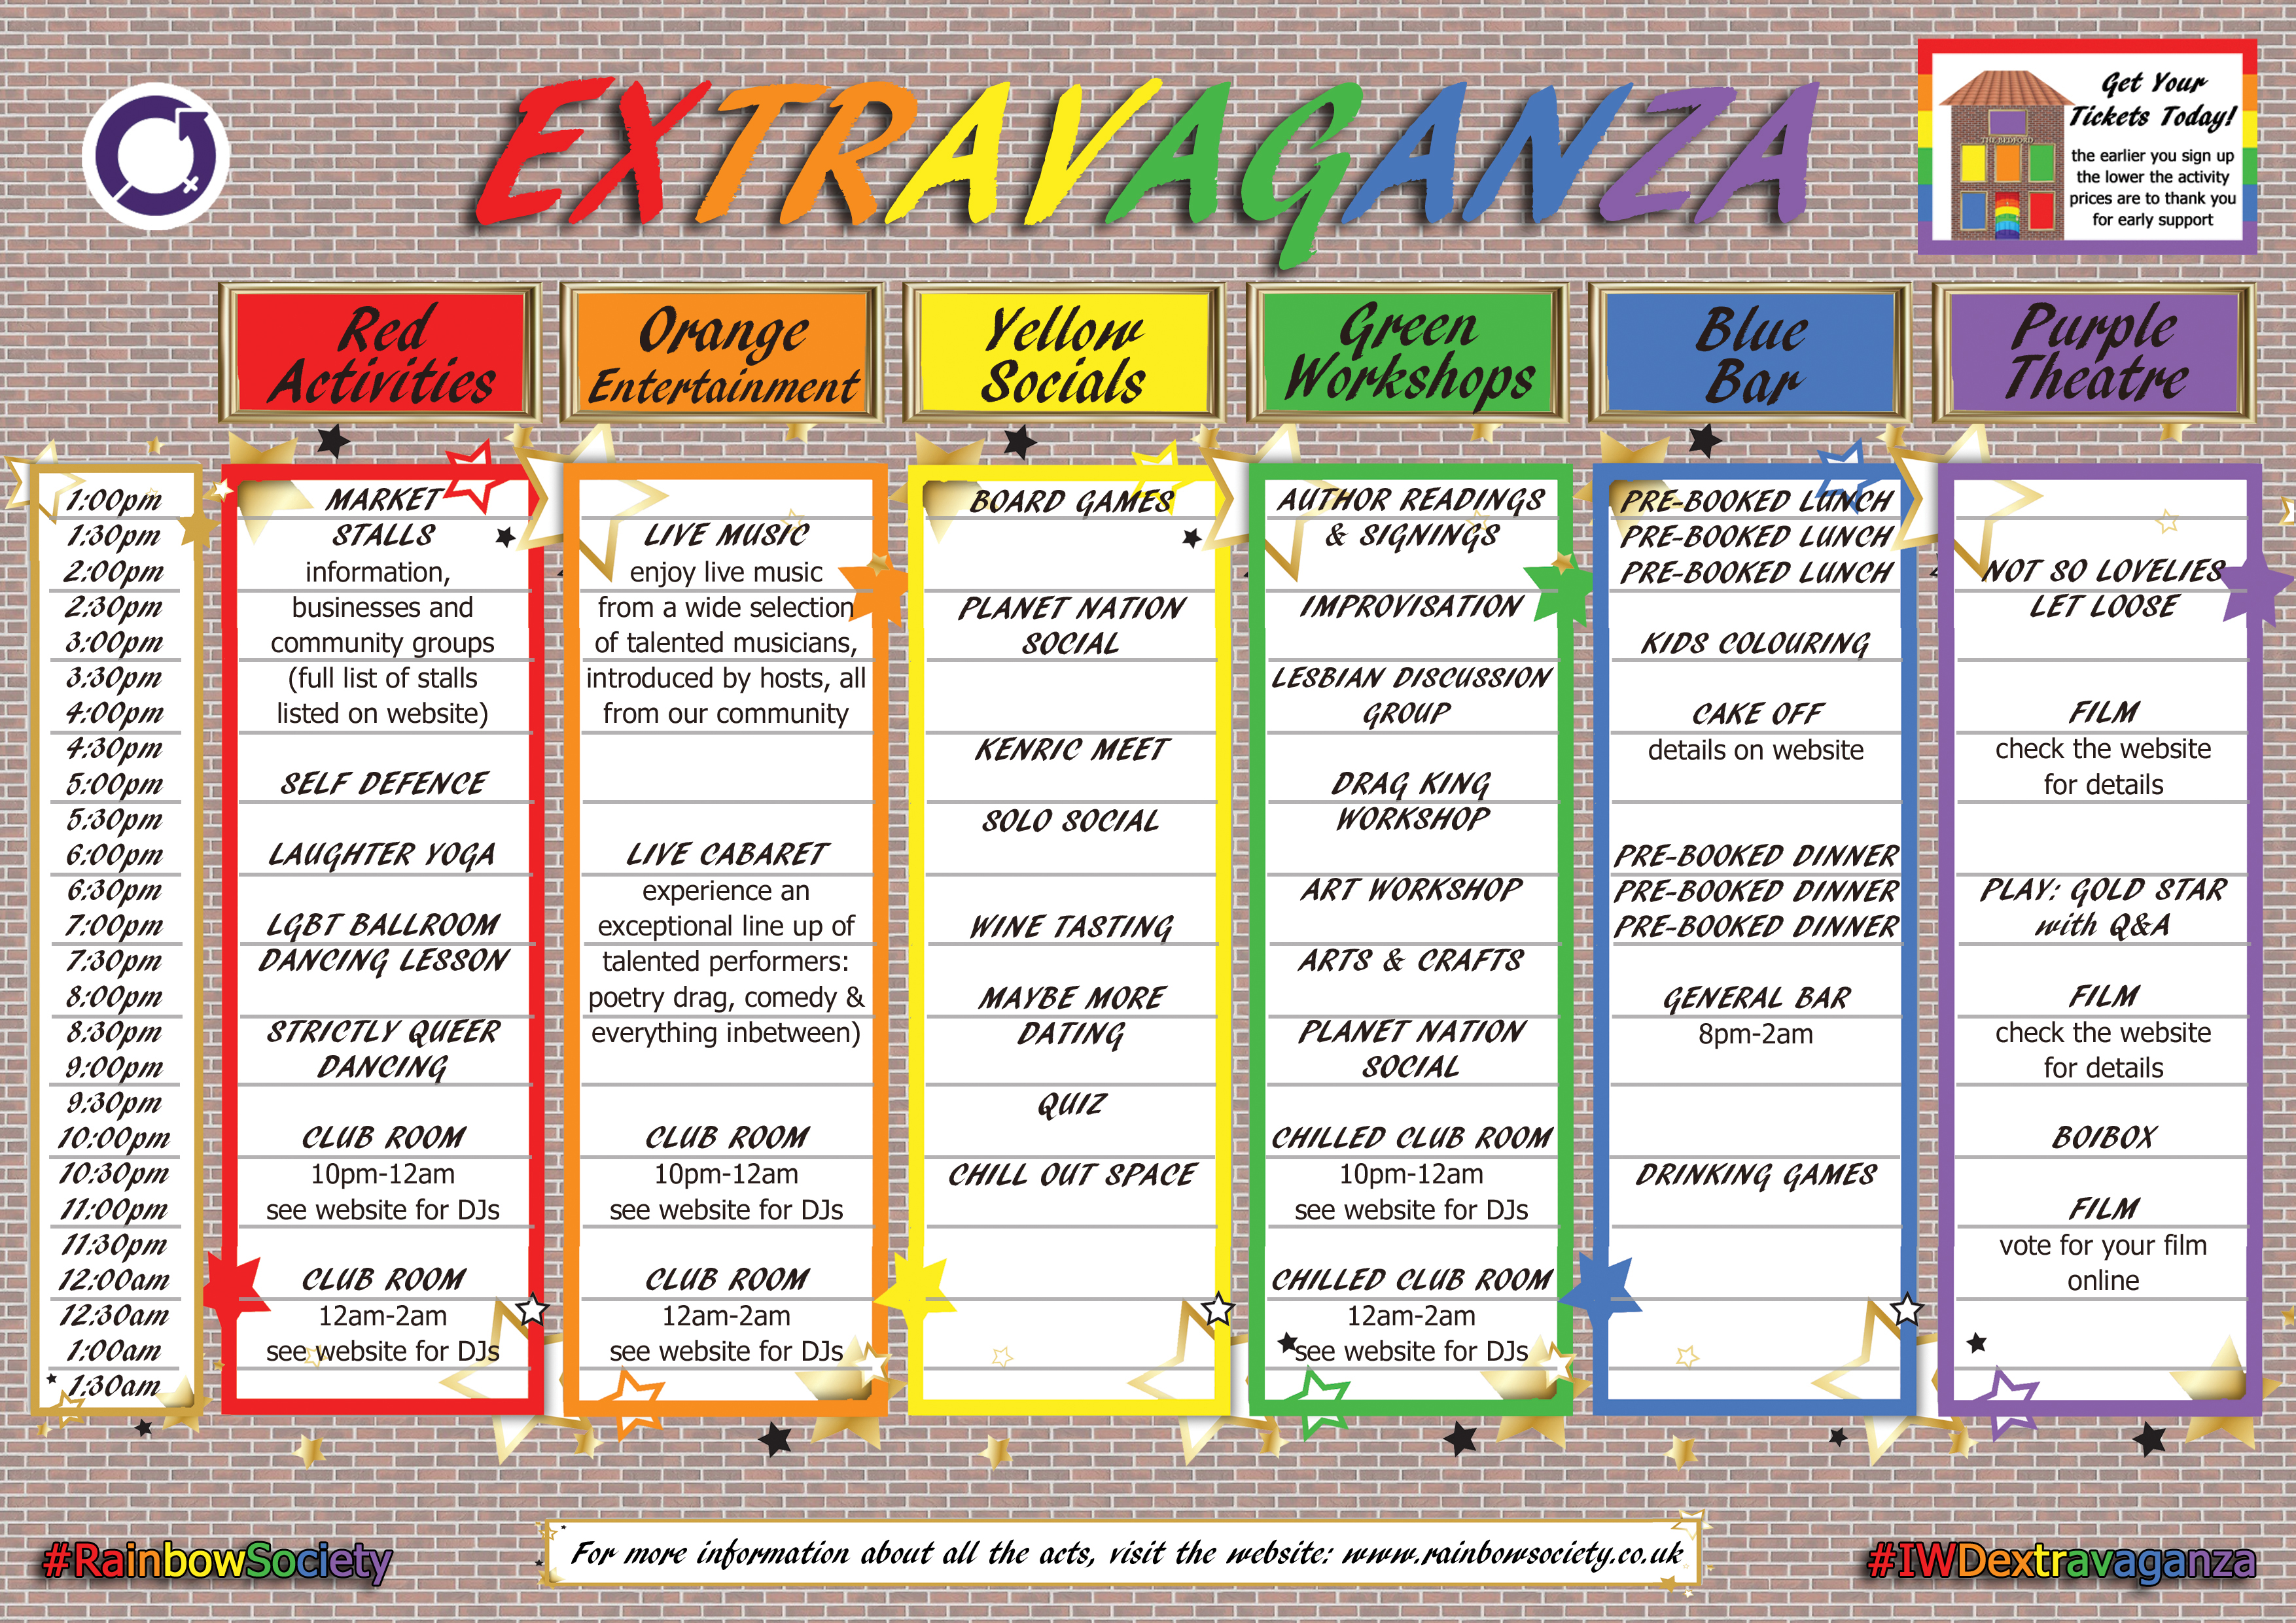 IWD Extravaganza Timetable